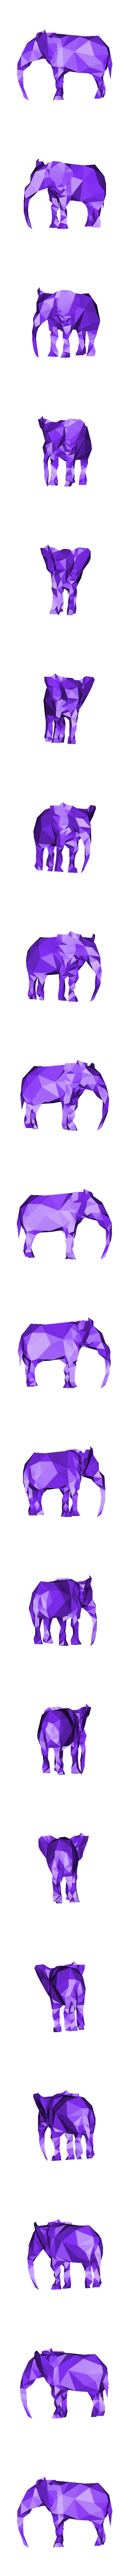 polygon_elephant.stl Download free STL file Polygon Elephant • 3D printable template, IDEABOX